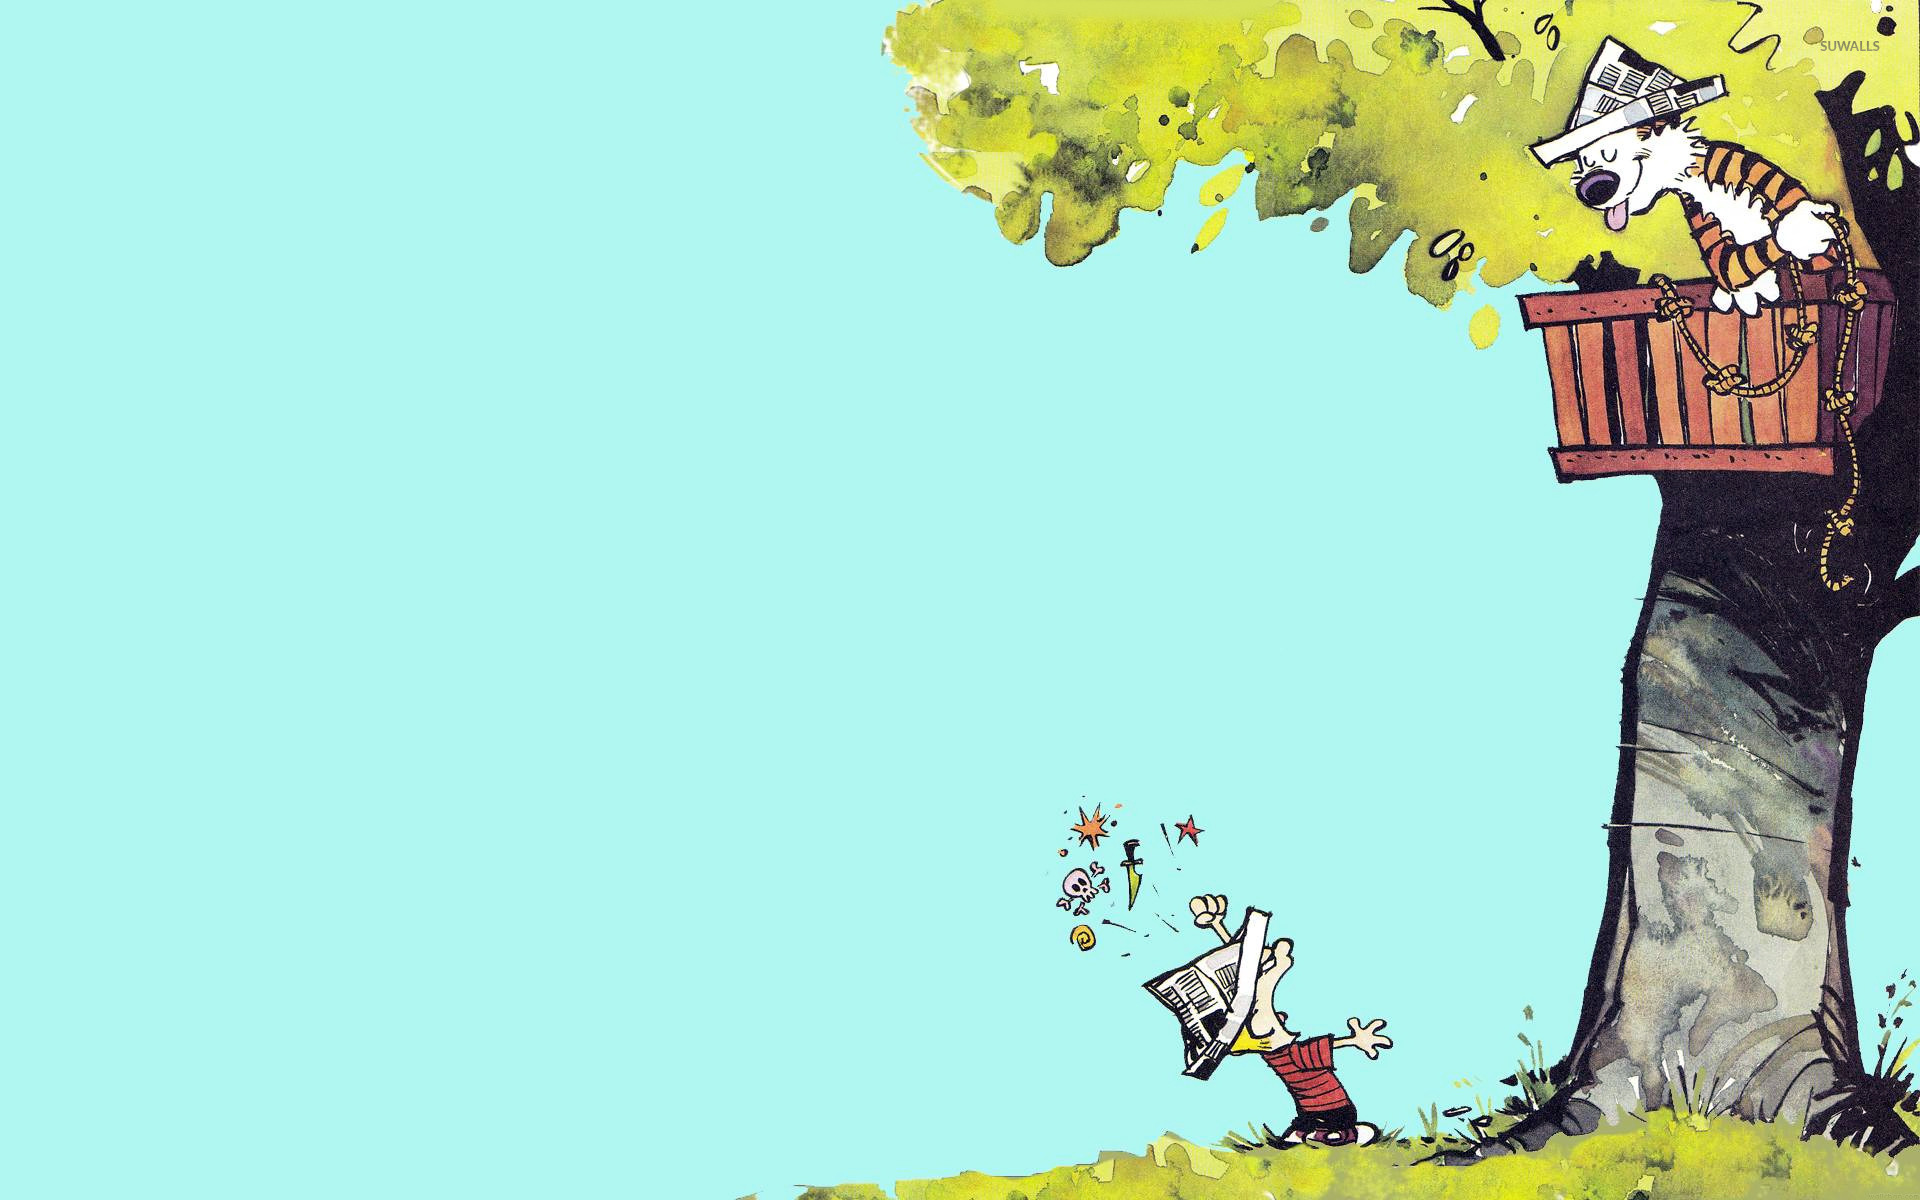 Calvin and Hobbes wallpaper   Cartoon wallpapers   15320 1920x1200